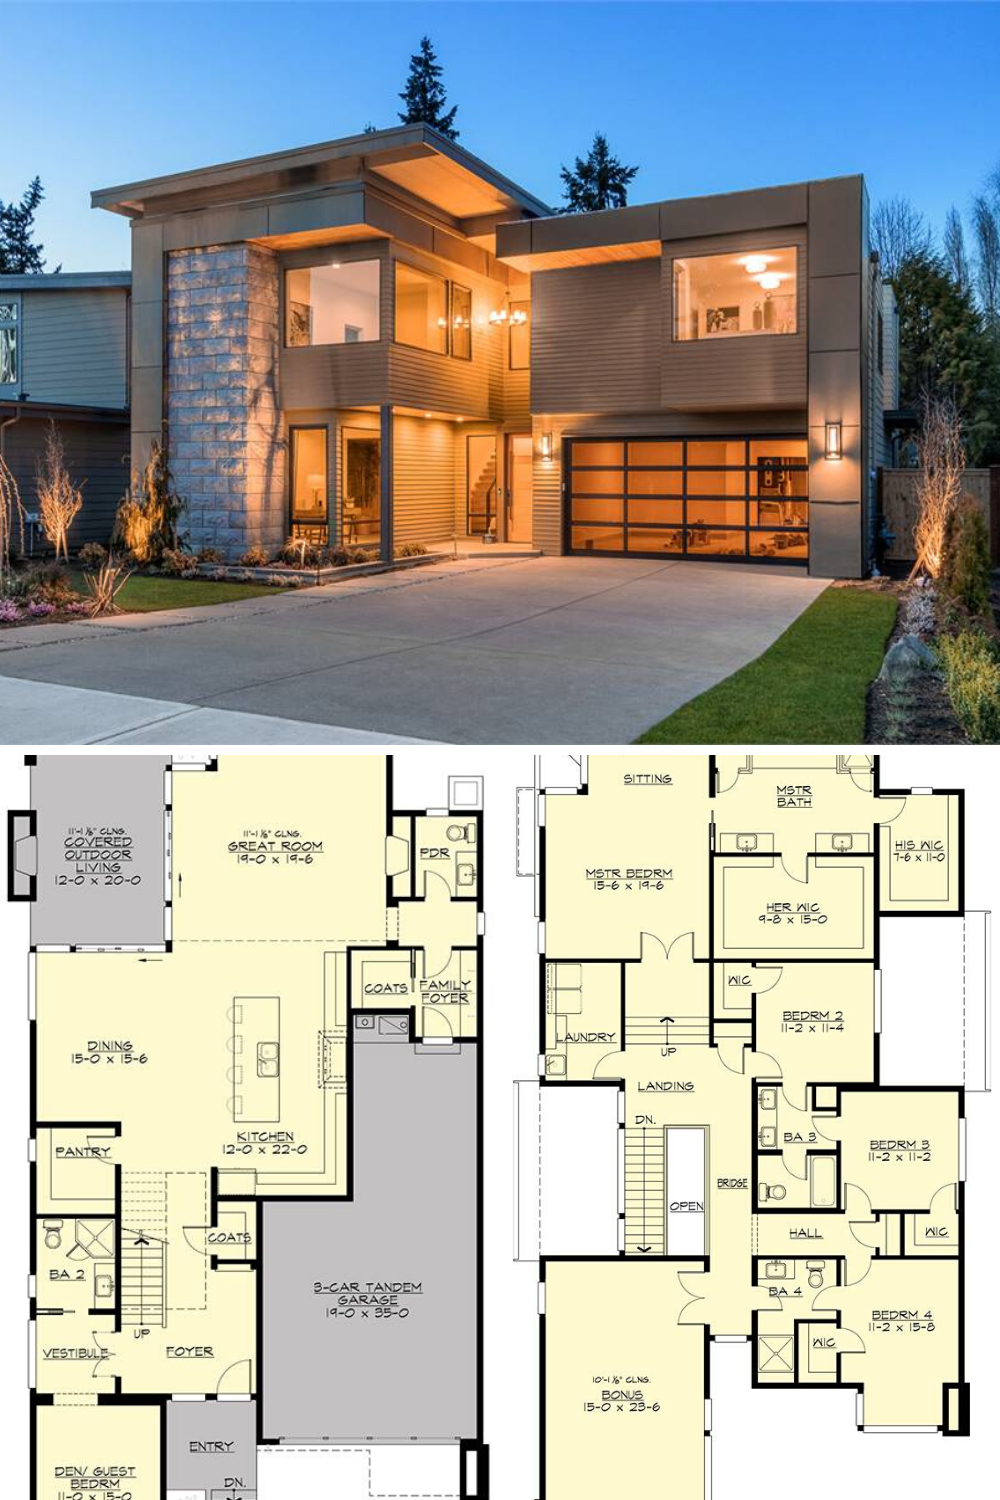 Two Story 4 Bedroom Sunoria Contemporary Style Home Floor Plan Best Modern House Design Modern House Floor Plans Modern Style House Plans